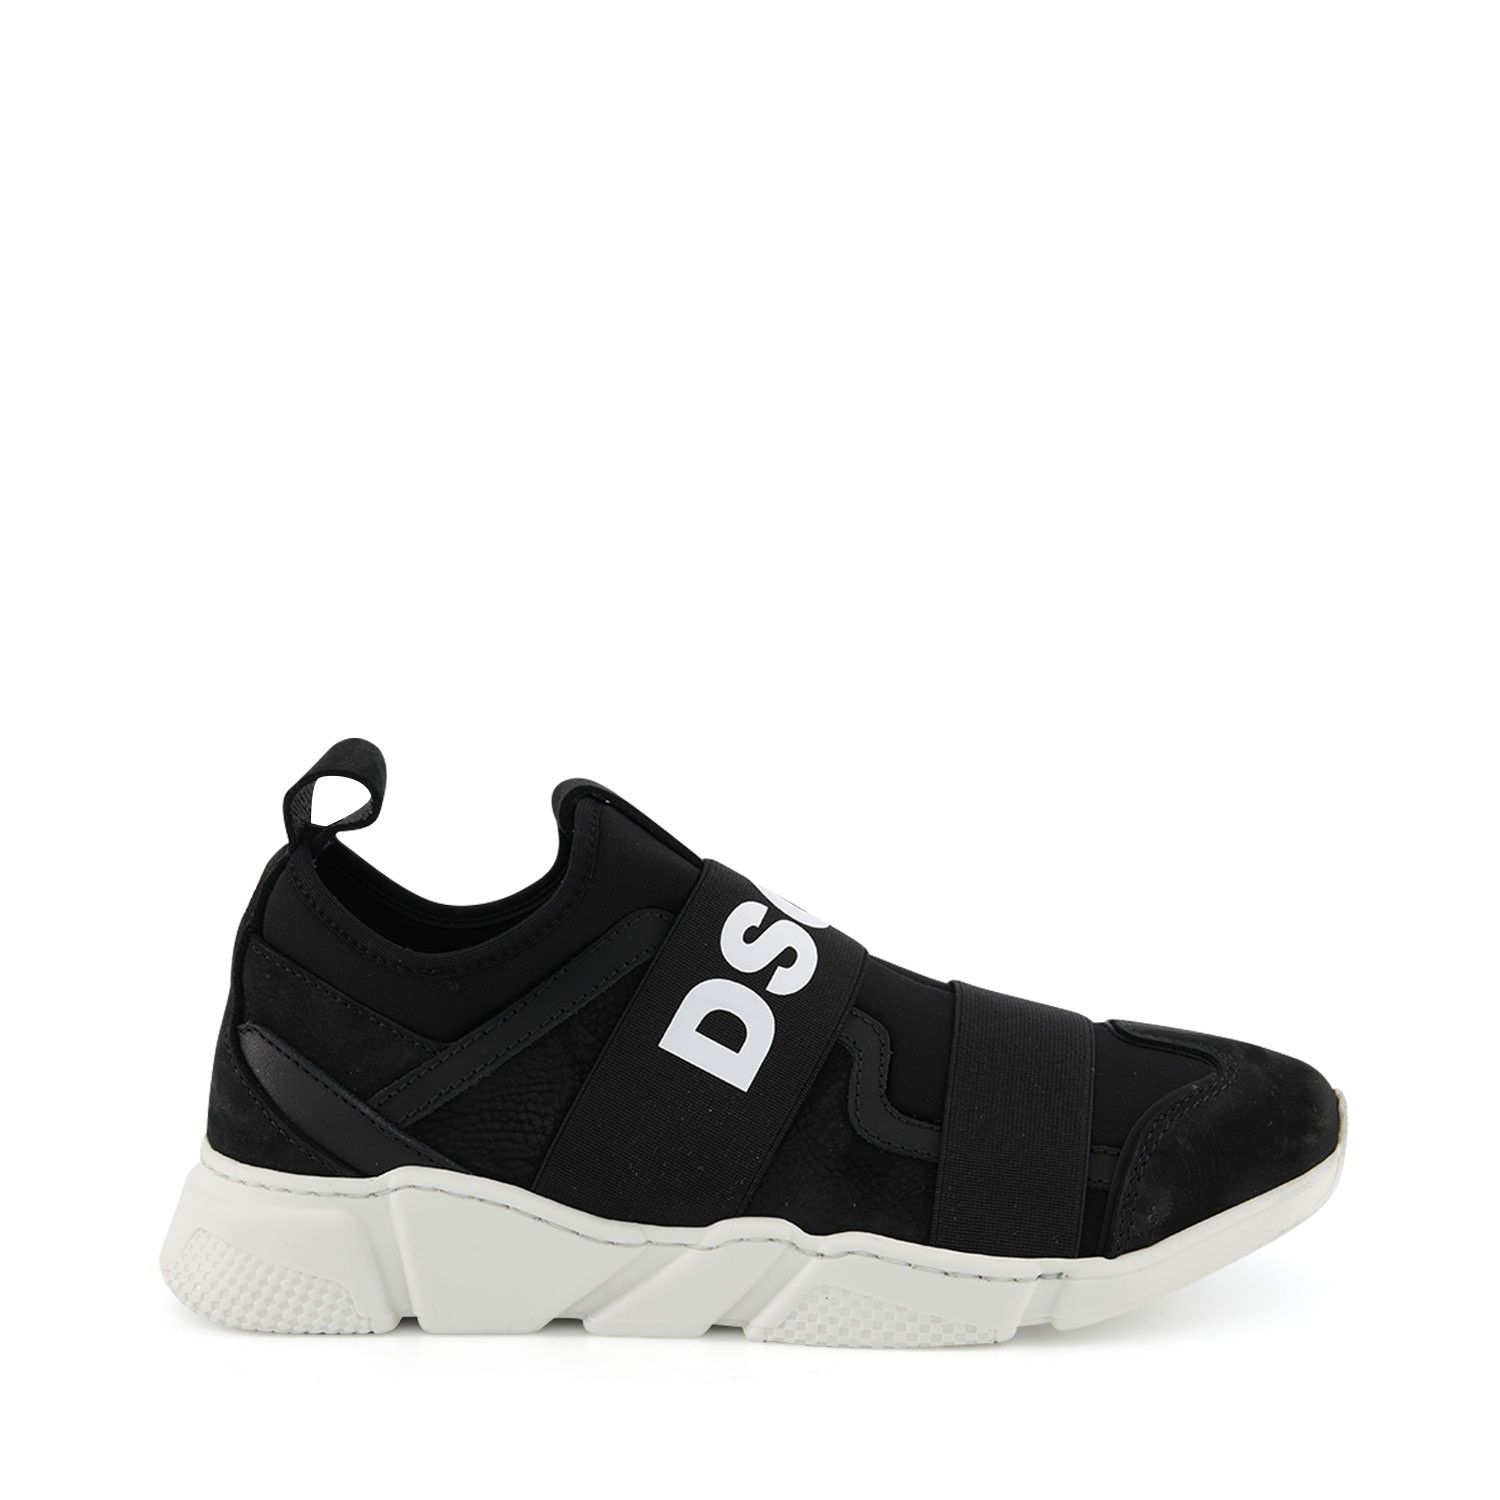 Picture of Dsquared2 63521 kids sneakers black